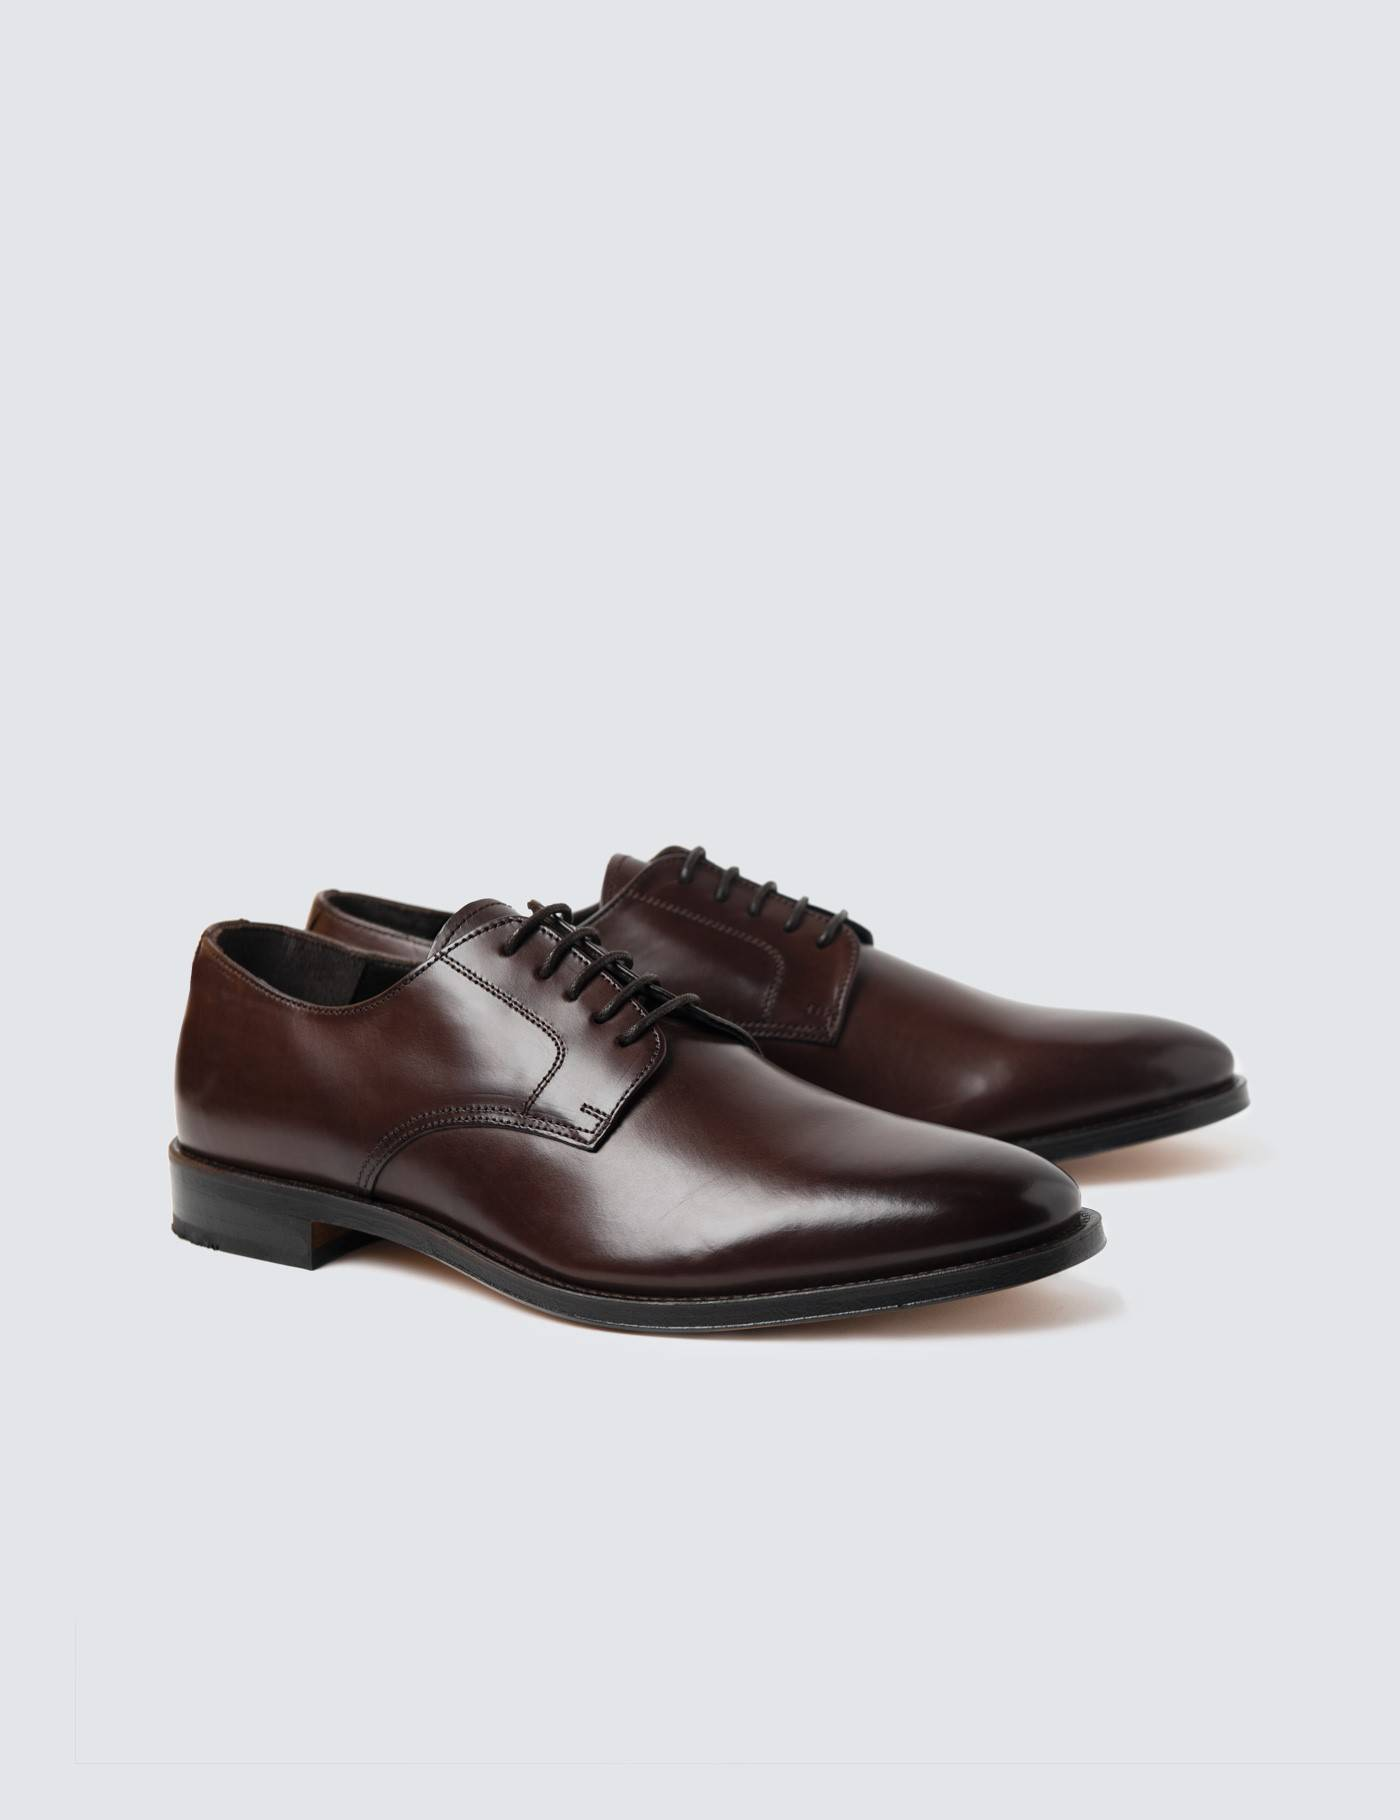 Hawes & Curtis Men's Leather Plain Derby Shoes in Brown Size 10.5